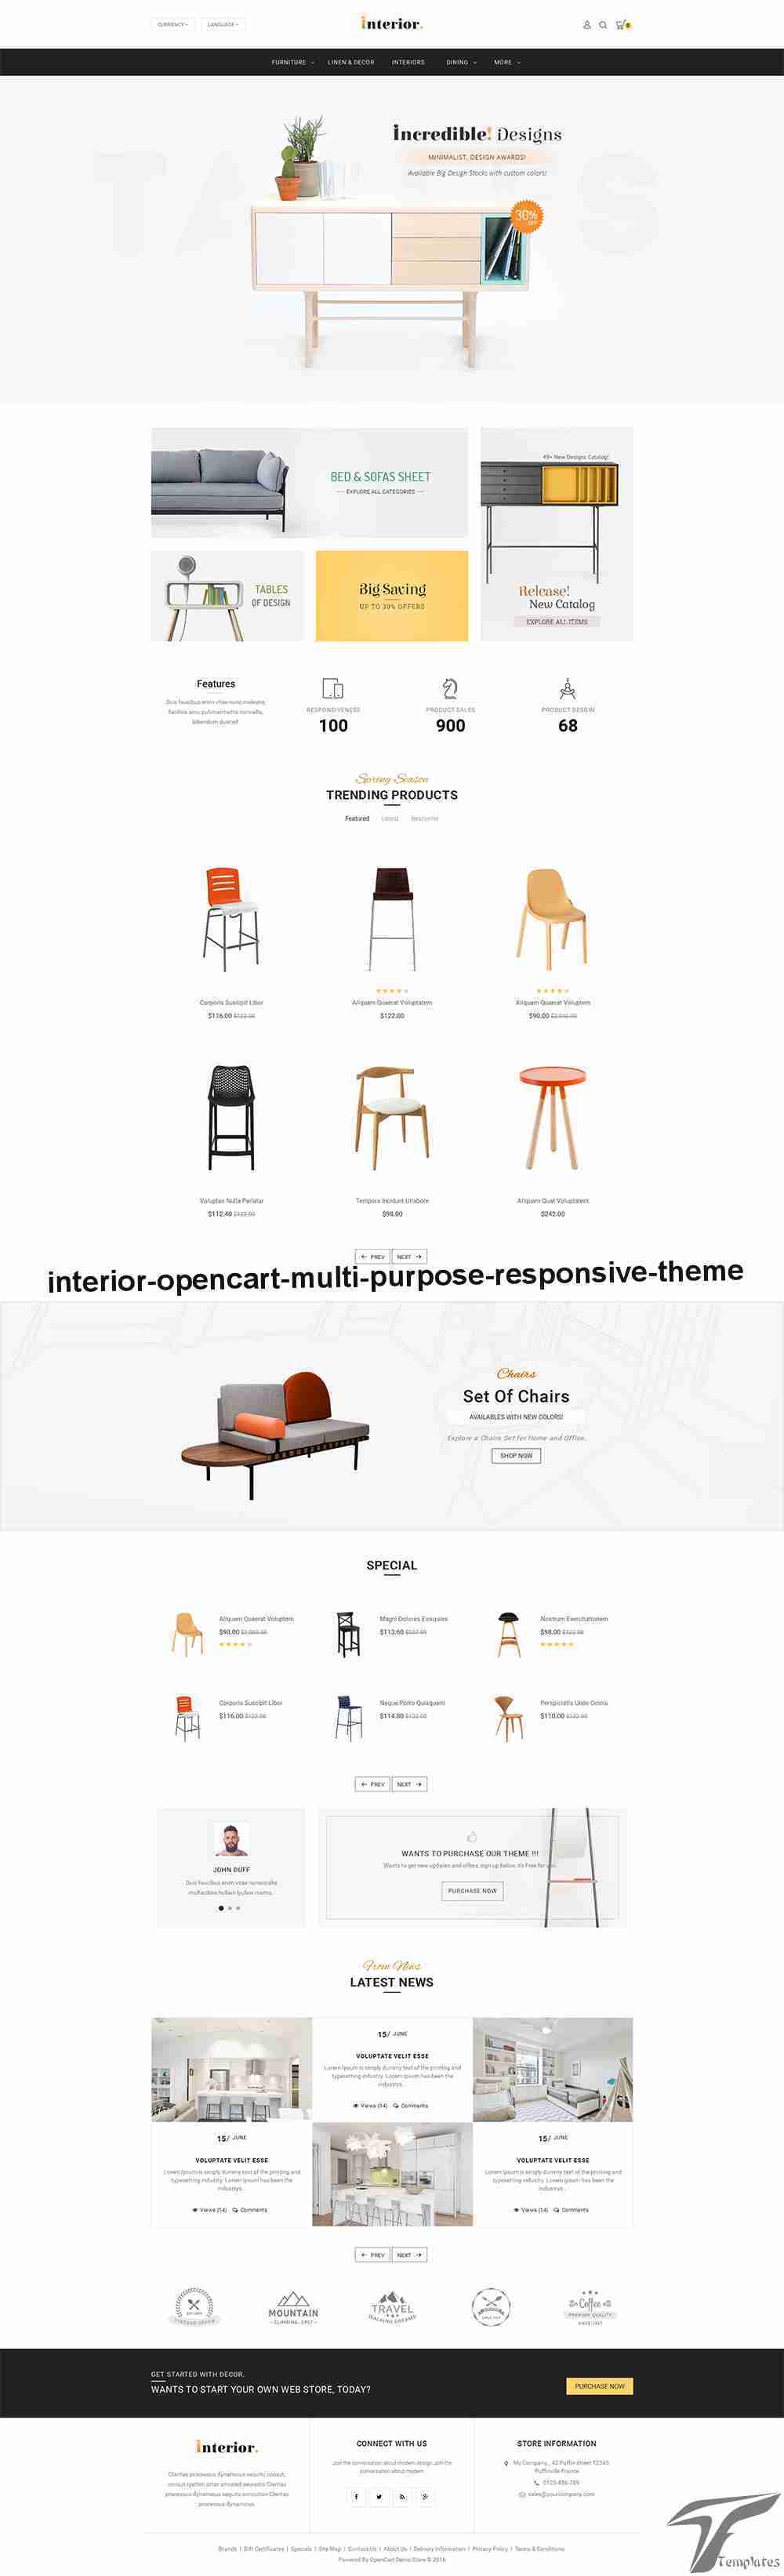 https://images.besthemes.com/images/h1_interior-opencart-multi-purpose-responsive-theme3-_-196005198/02.Furniture-Store.jpg